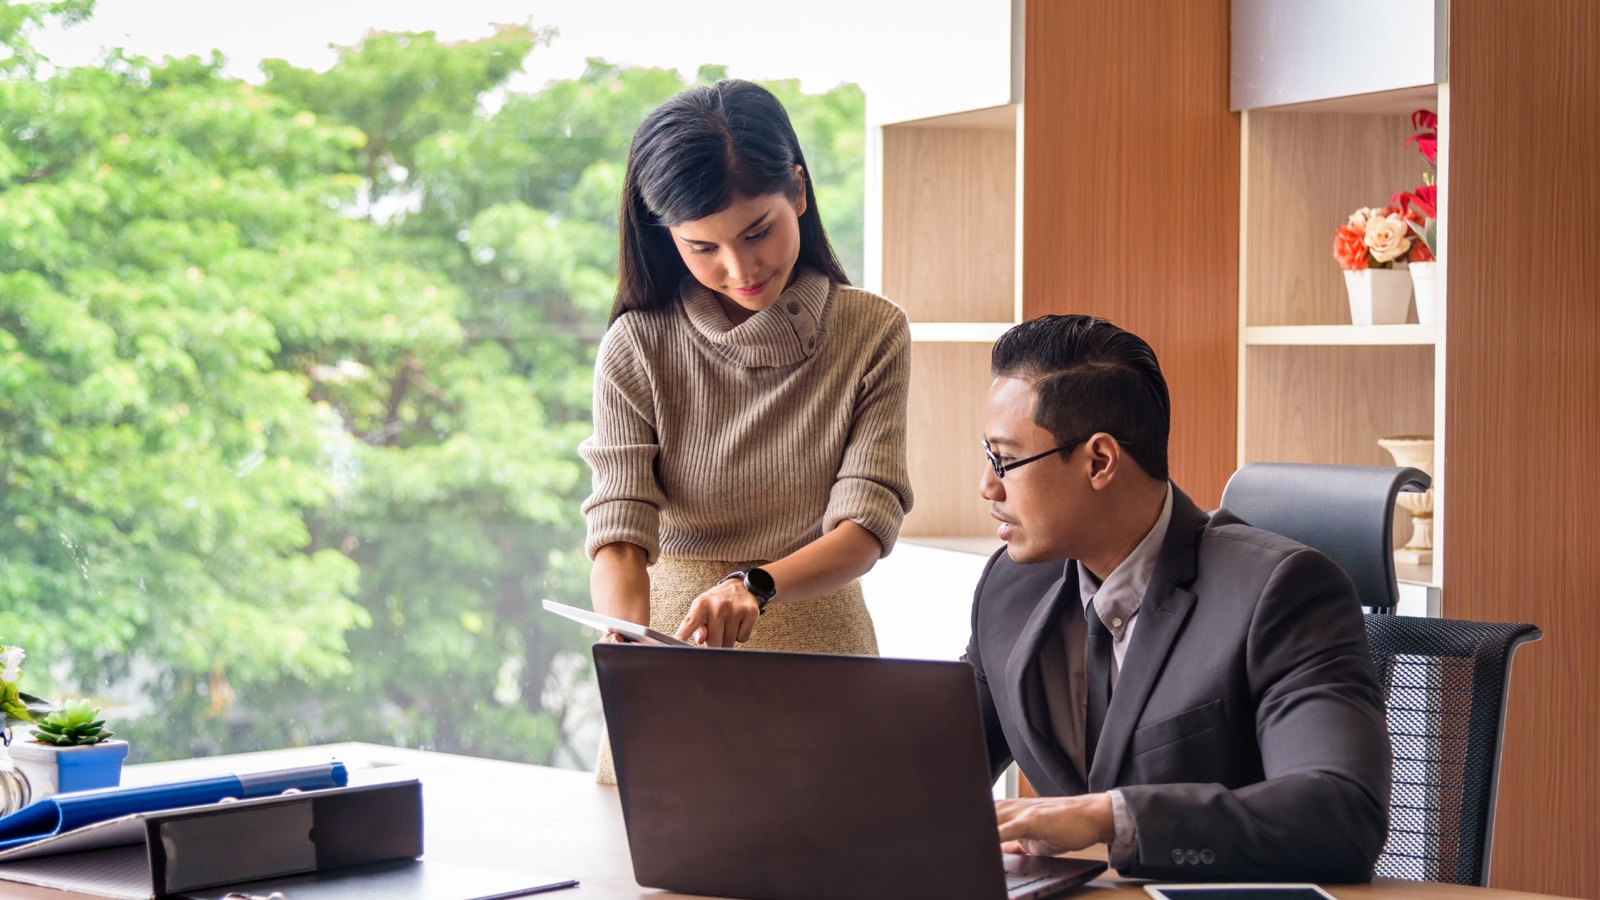 Characteristics of Indispensable Executive Assistants